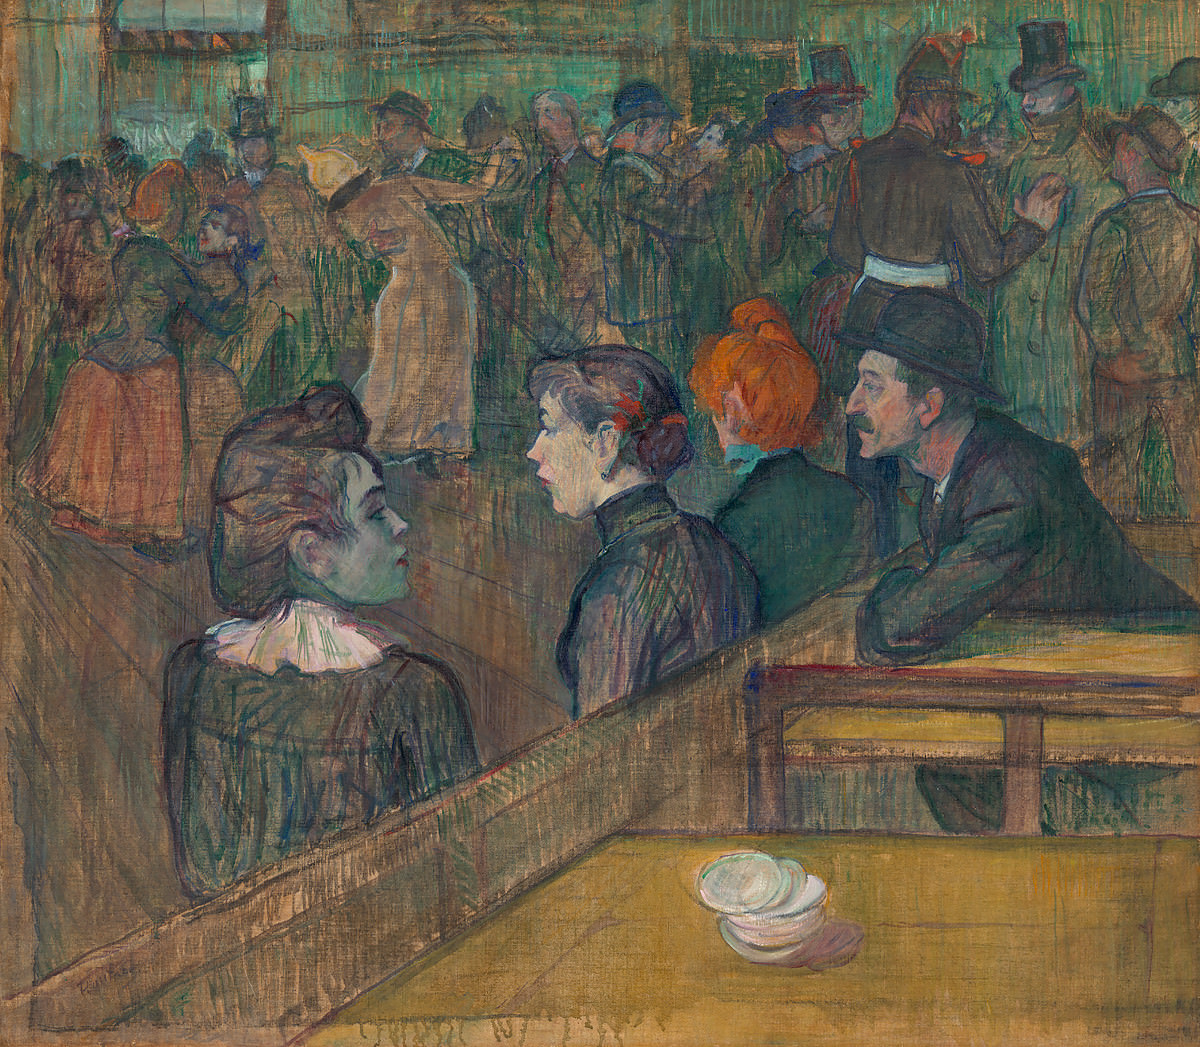 Fig. 11 -Moulin de la Galette, Toulouse Lautrec, 1889. Photo: Disclosure.